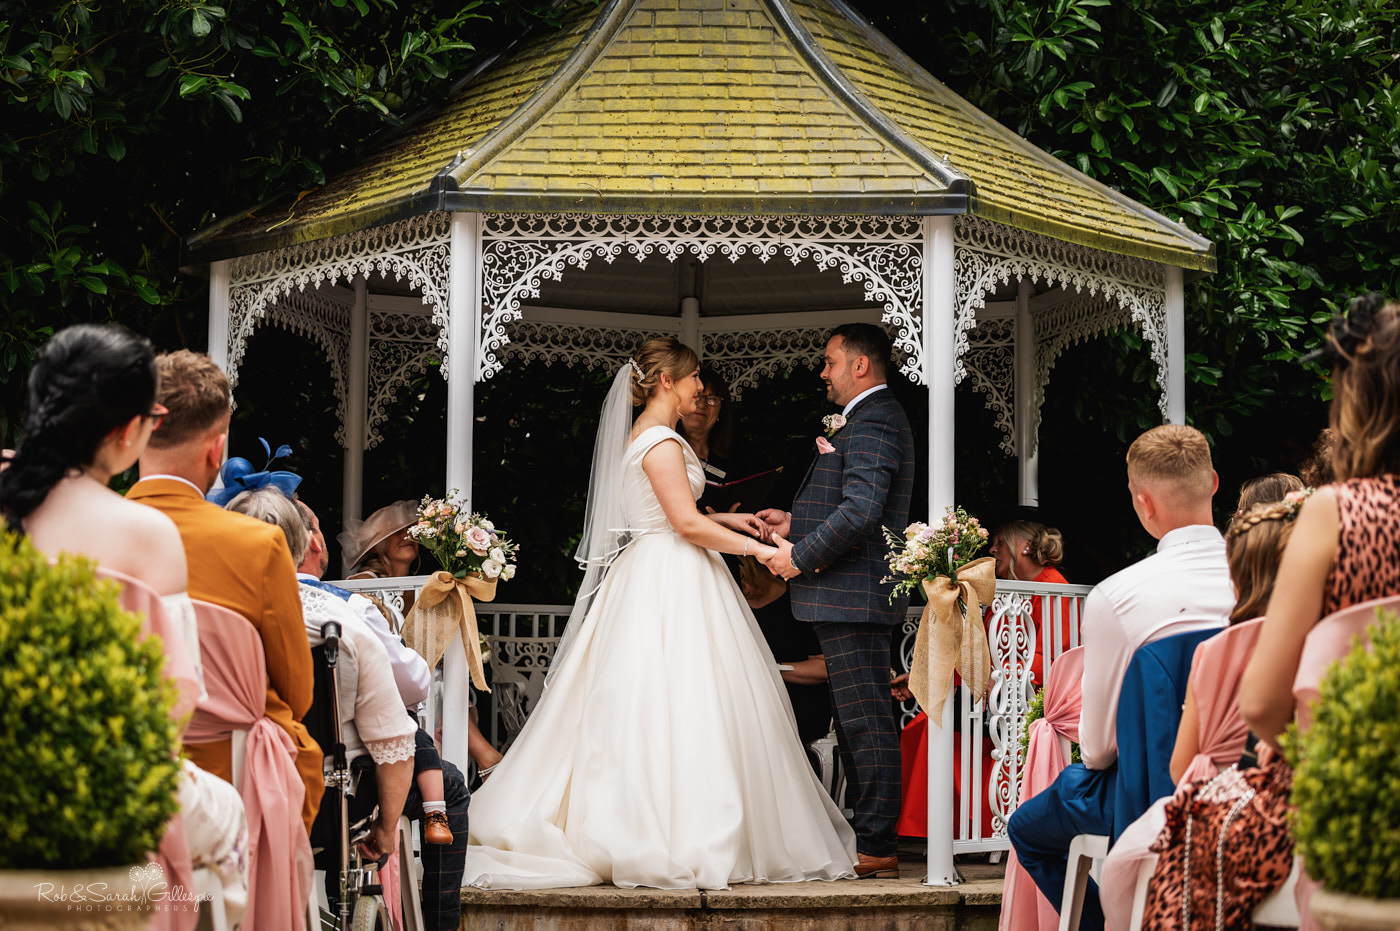 Outdoor wedding ceremony at Pendrell Hall in Staffordshire